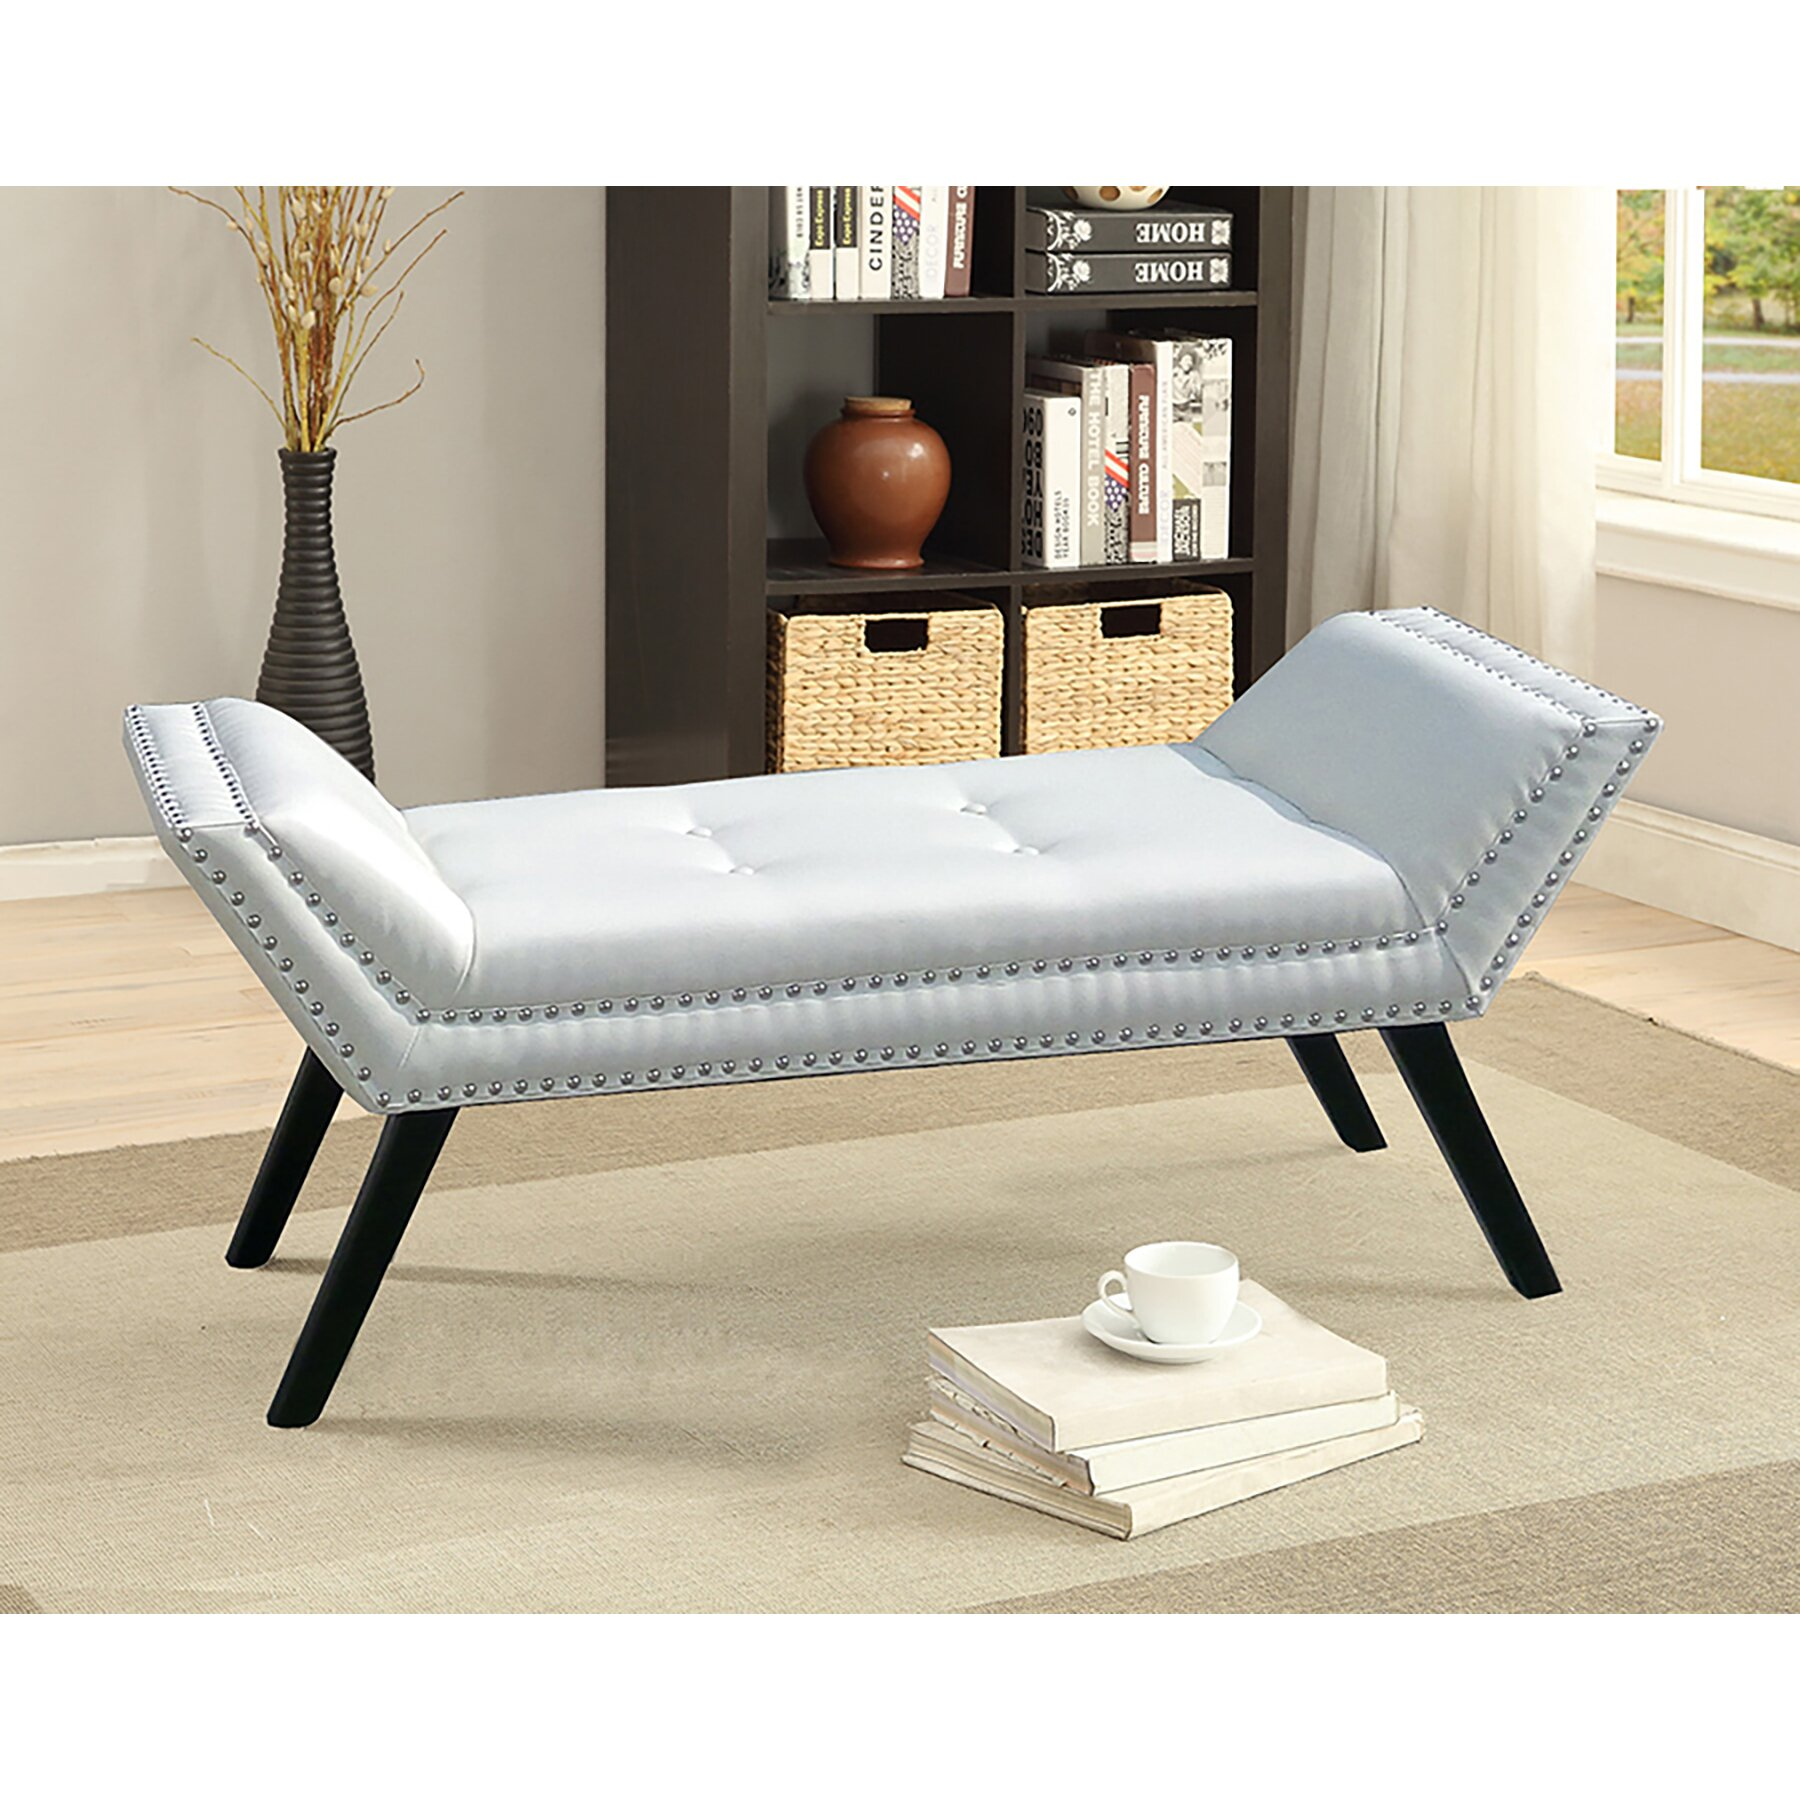 Wholesale interiors baxton studio upholstered bedroom for Bedroom upholstered bench